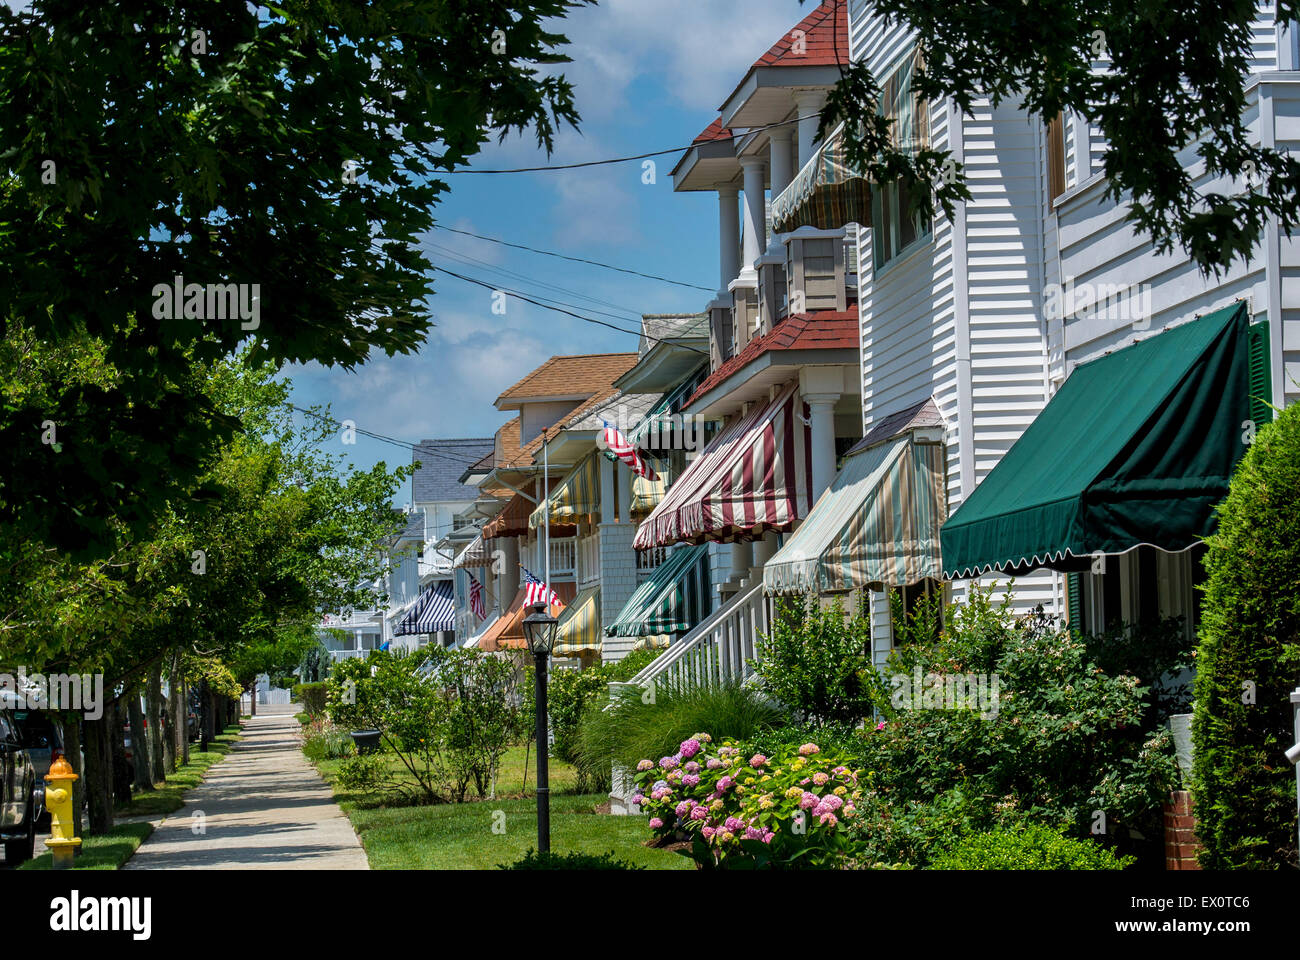 Ocean City New Jersey Usa Wooden Houses With Awnings In Summer